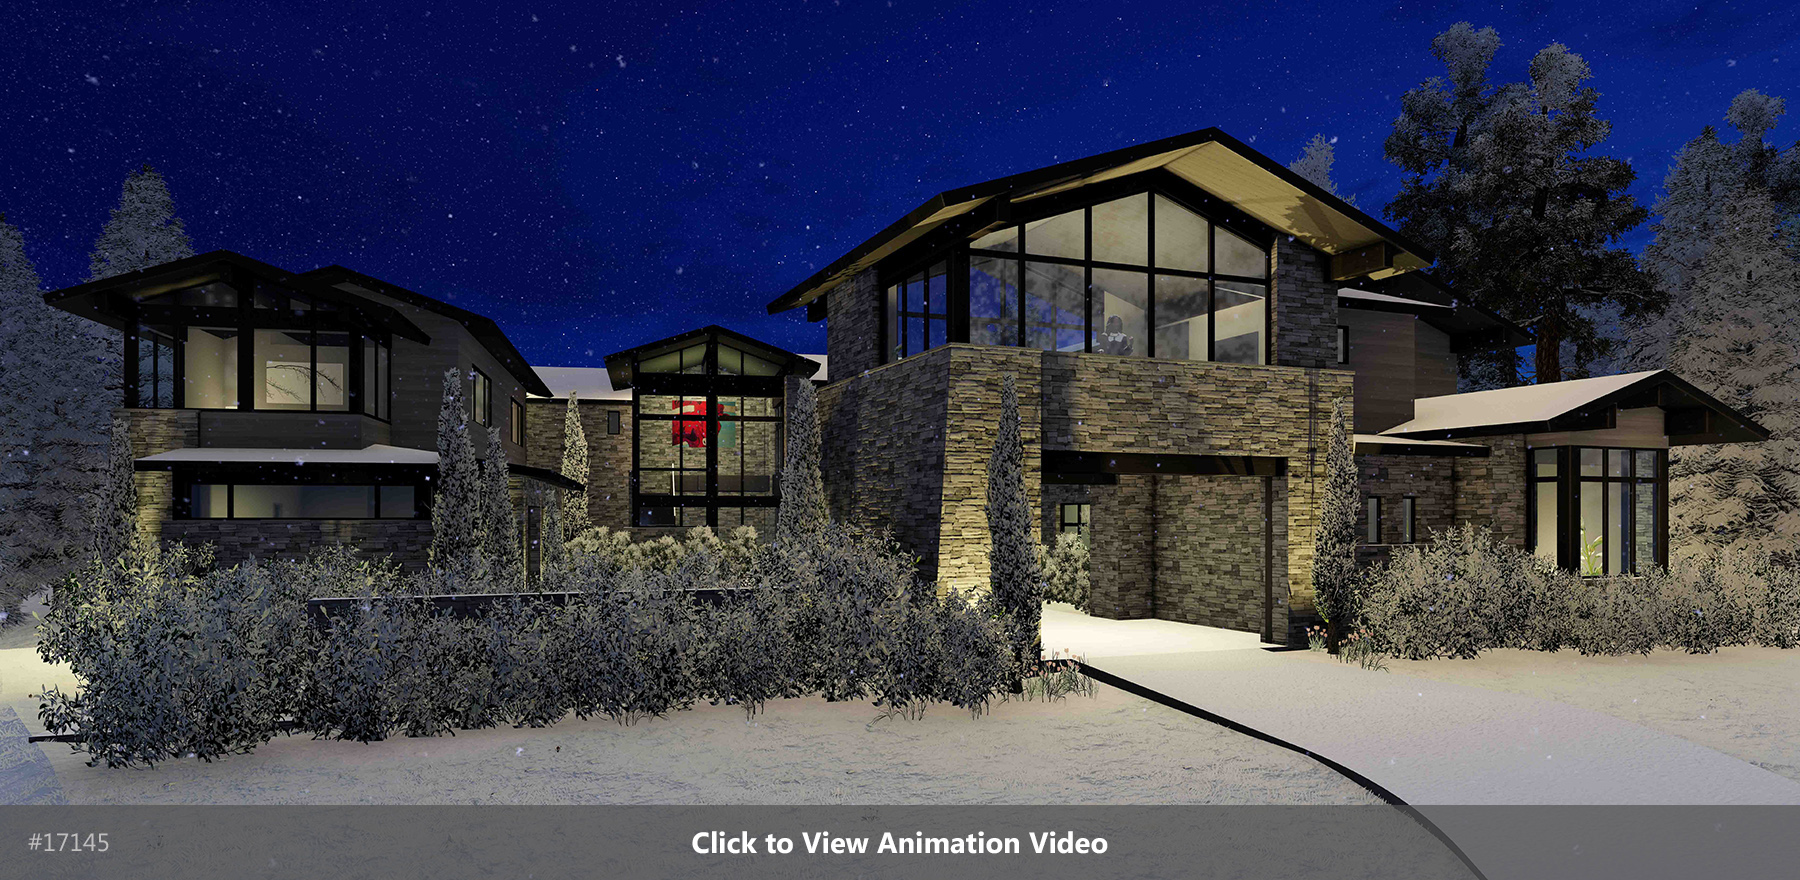 Winter Lodge Night Rendering